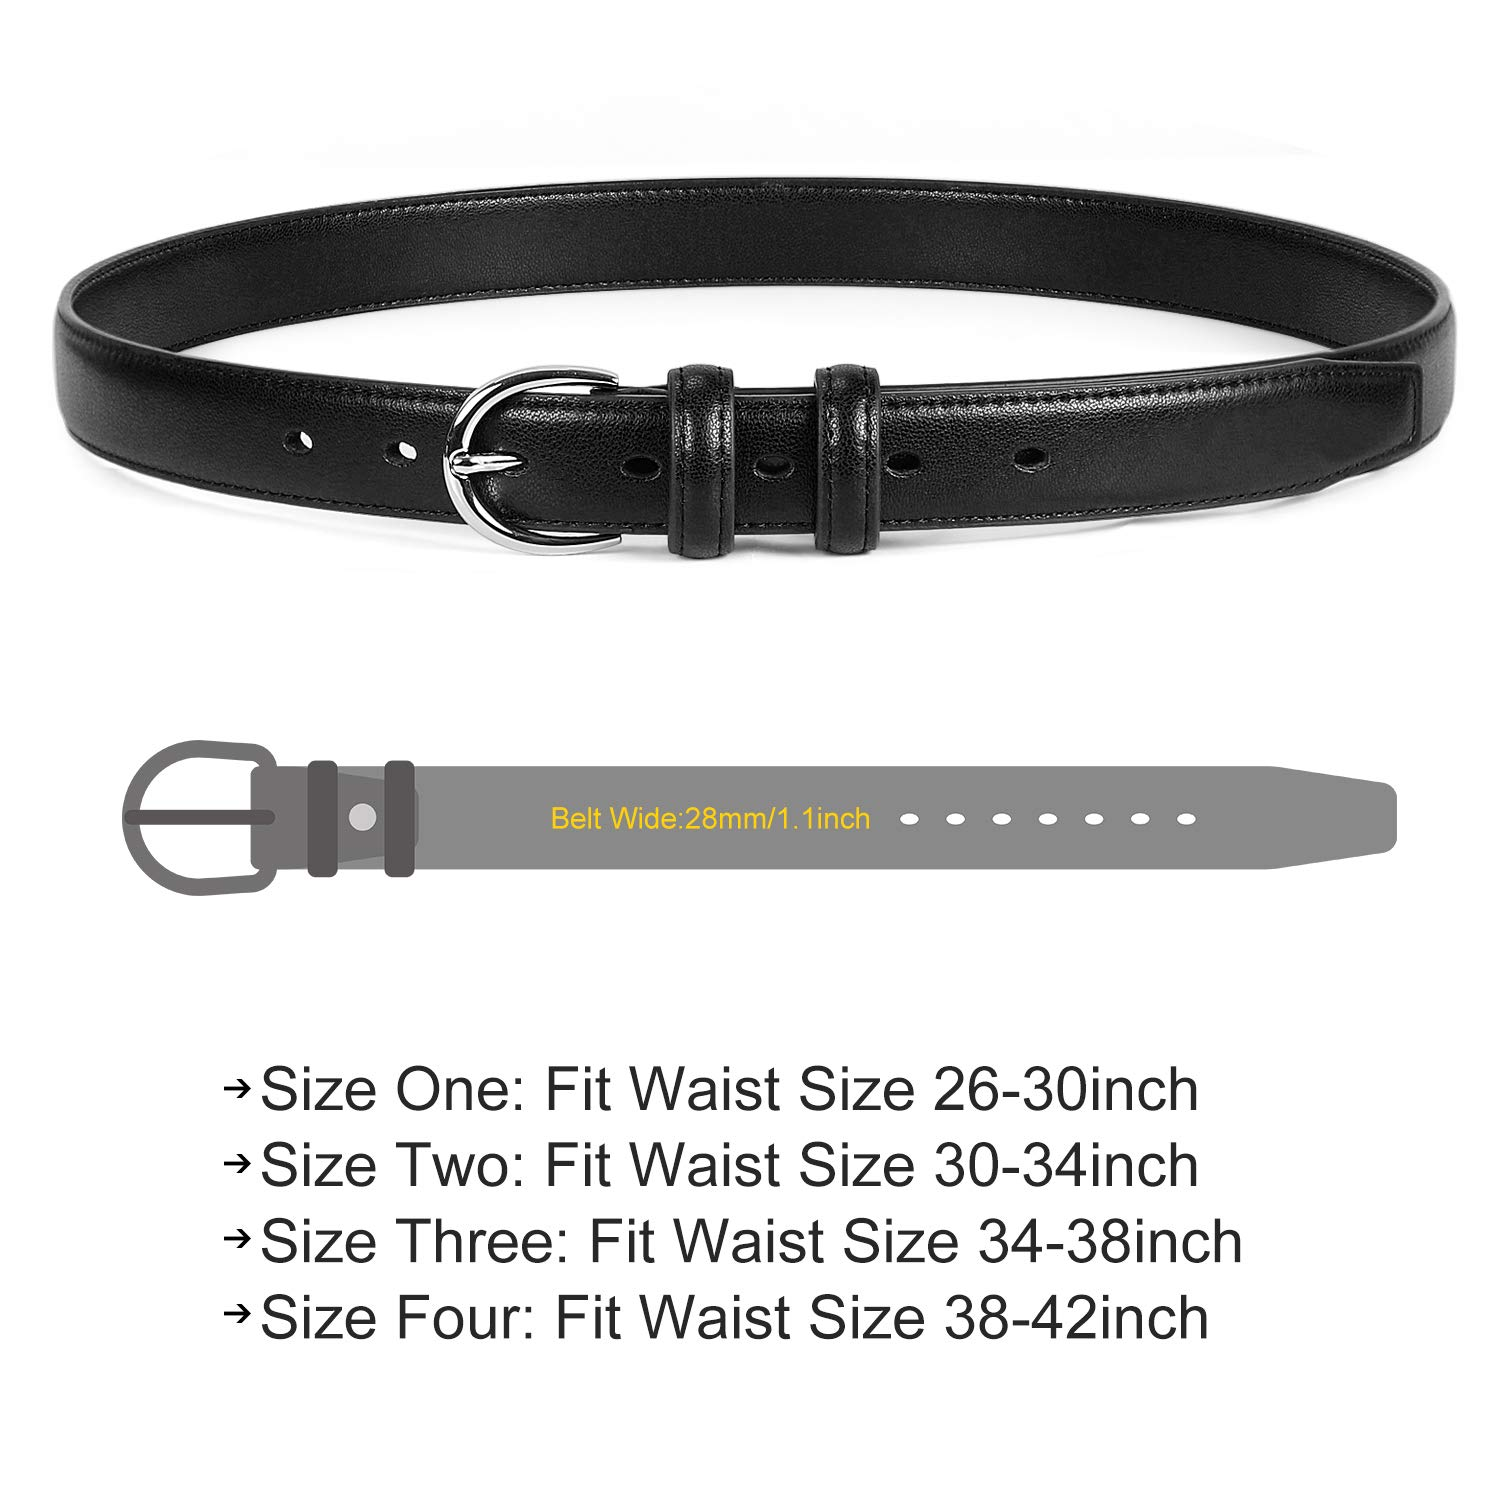 Women Genuine Leather Belt Thin Jeans Belts With Silver Prong Buckle Muti-Colors,Black,Fit Waist 26-30inch